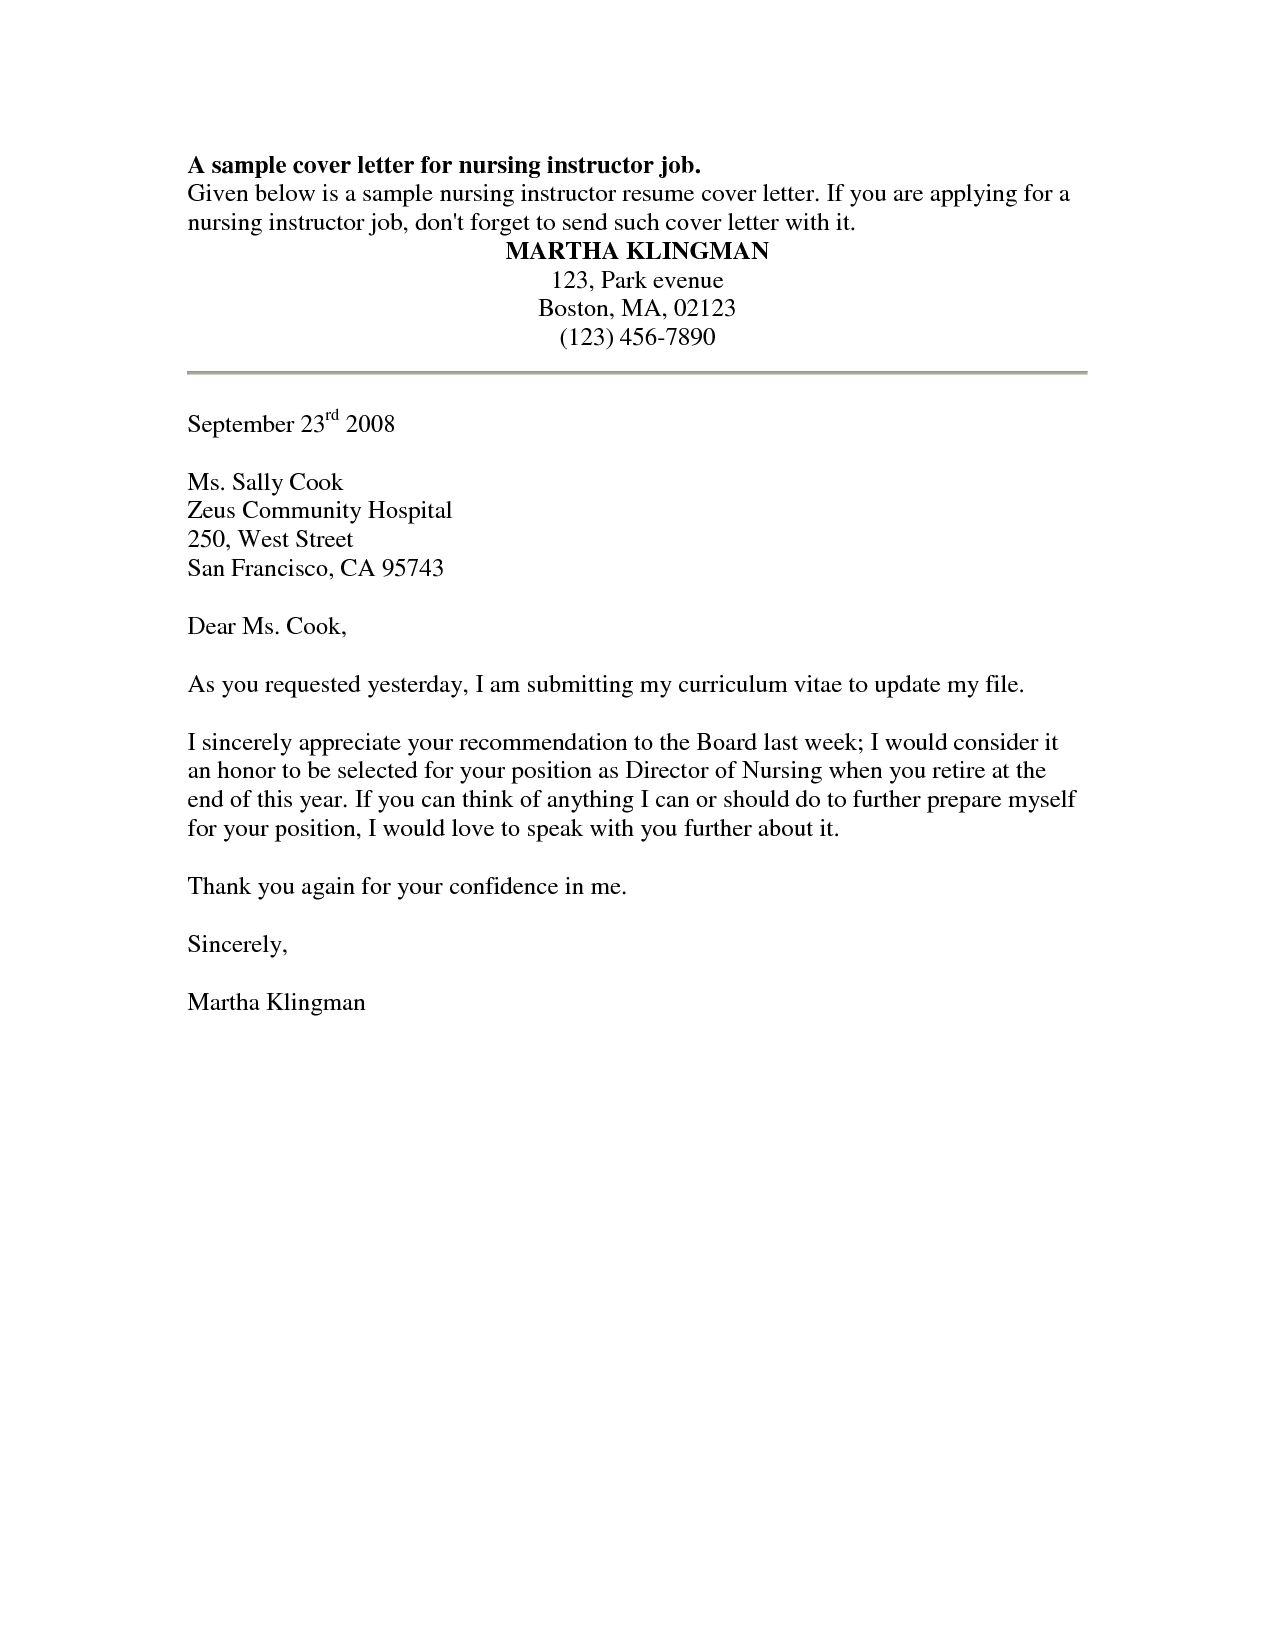 Board Director Cover Letter 23 How To Write A Resume Cover Letter How To Write A Resume